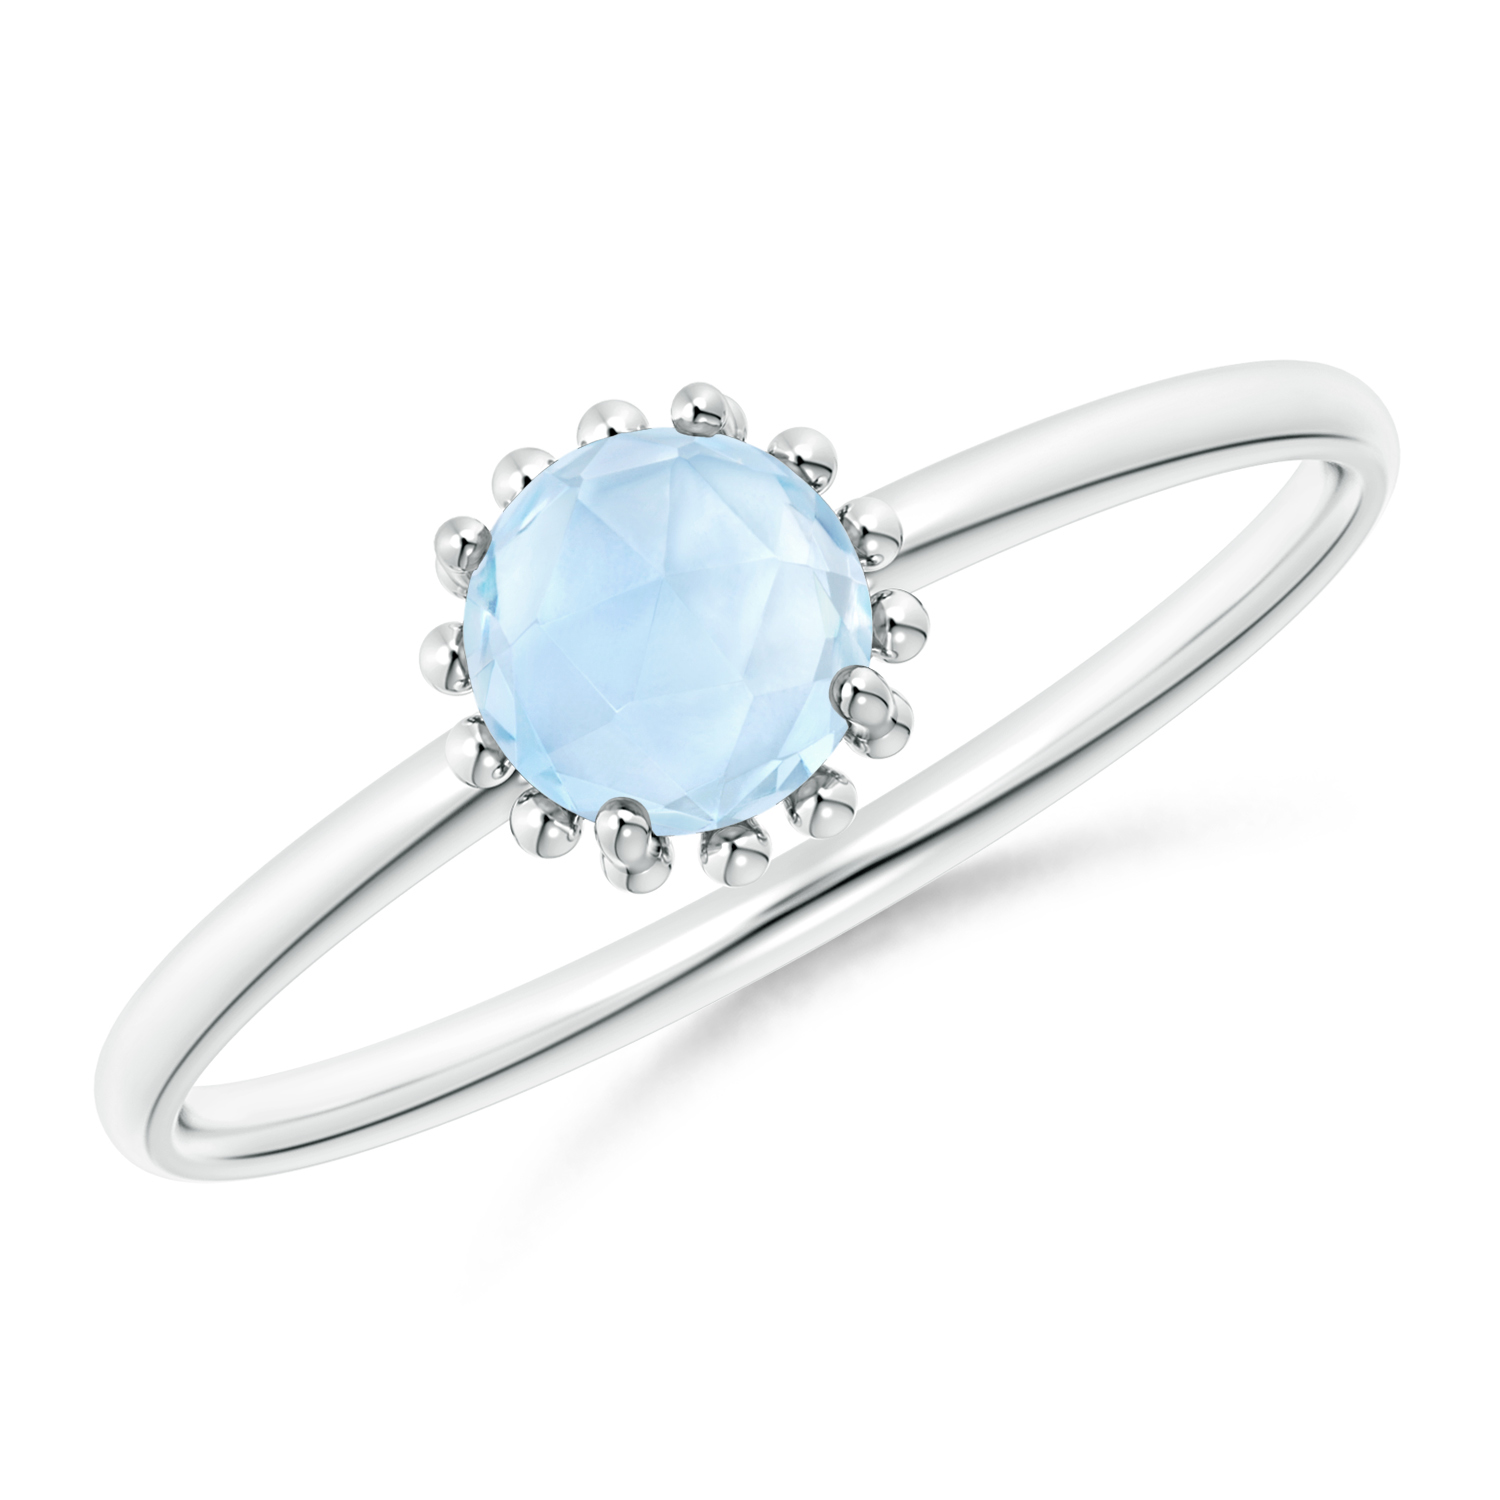 Solitaire Aquamarine Ring with Beaded Halo - Angara.com